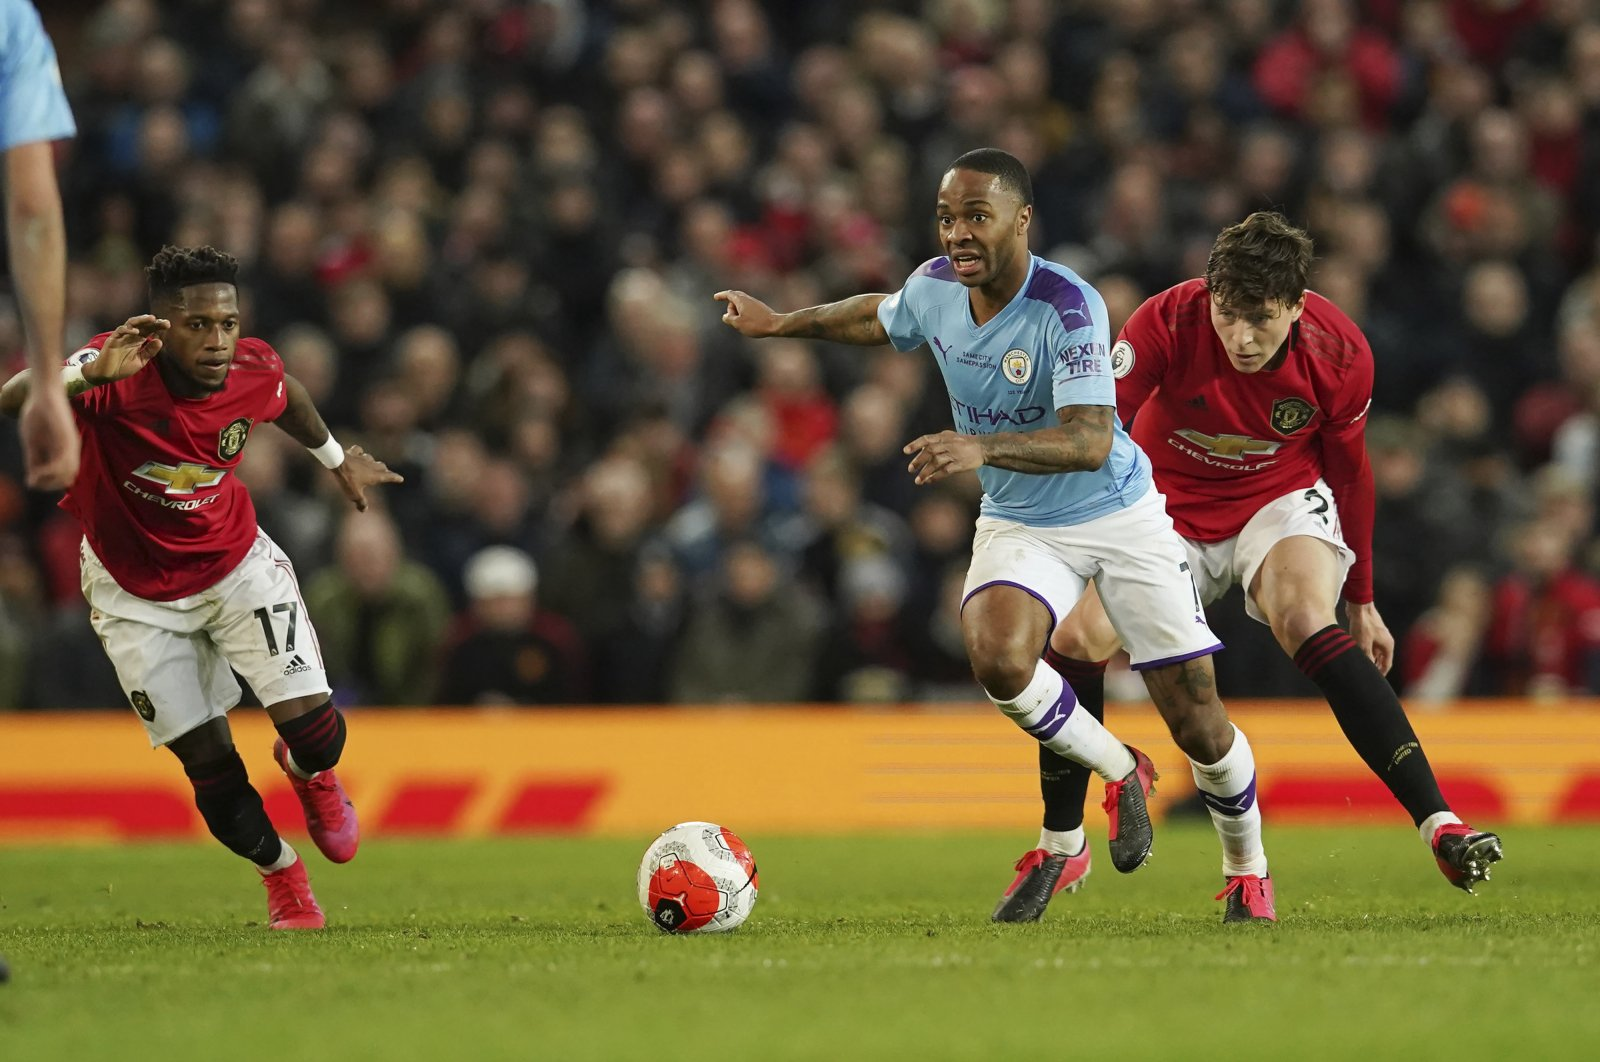 Manchester City's Raheem Sterling (C) and Manchester United's Victor Lindelof (R) compete for the ball during a Premier League match in Manchester, England, March 8, 2020. (AP Photo)